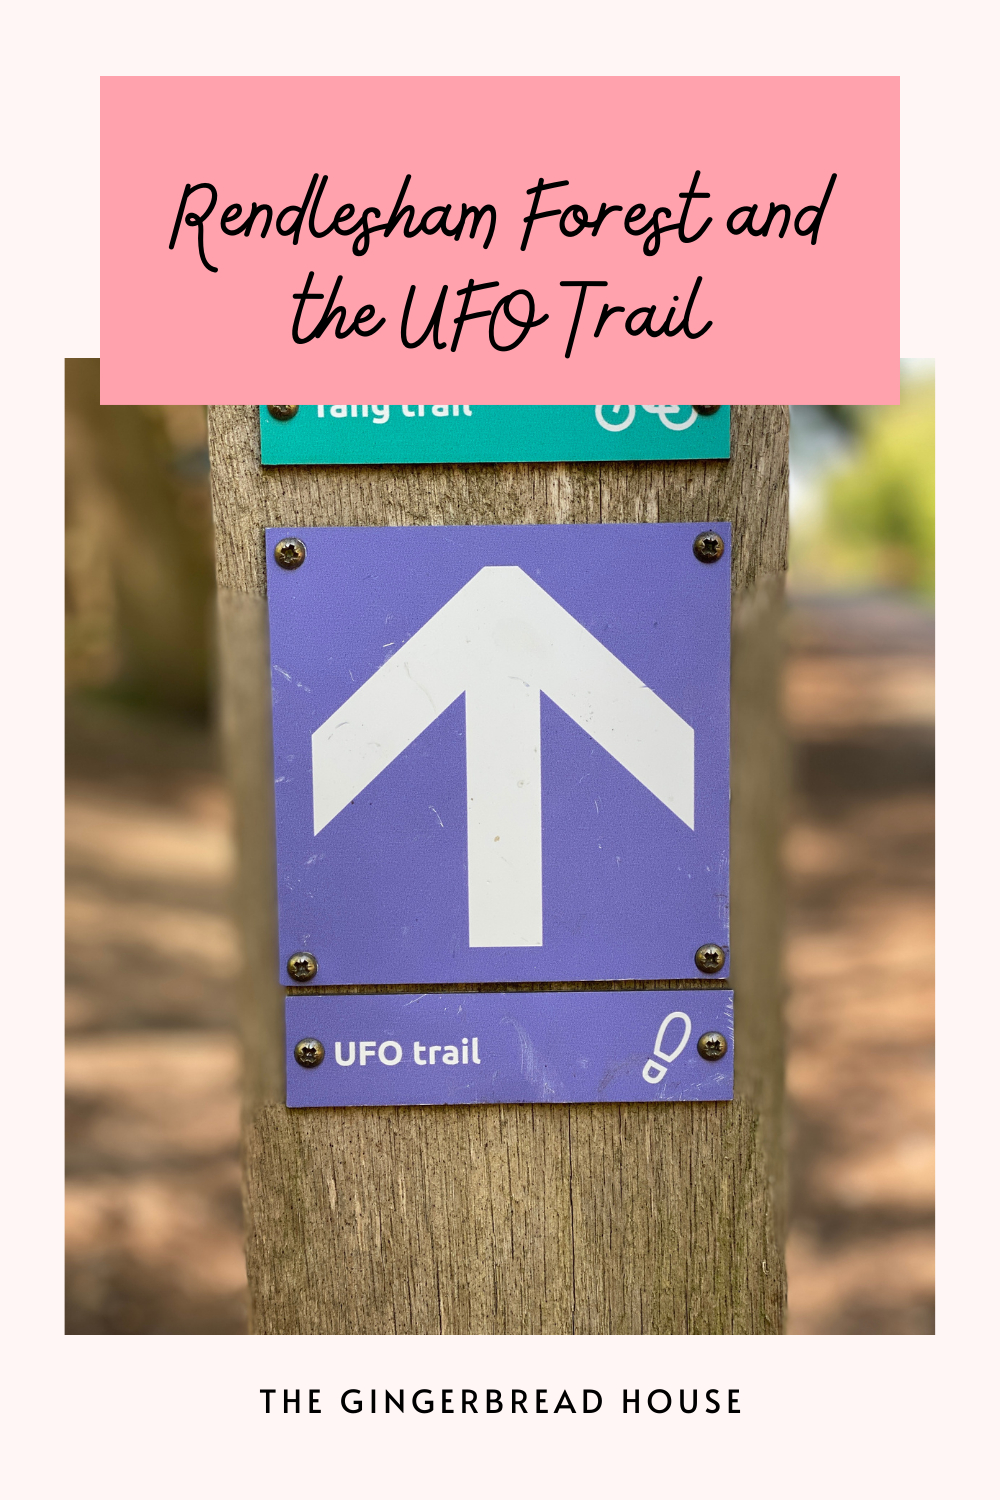 Rendlesham Forest and the UFO trail